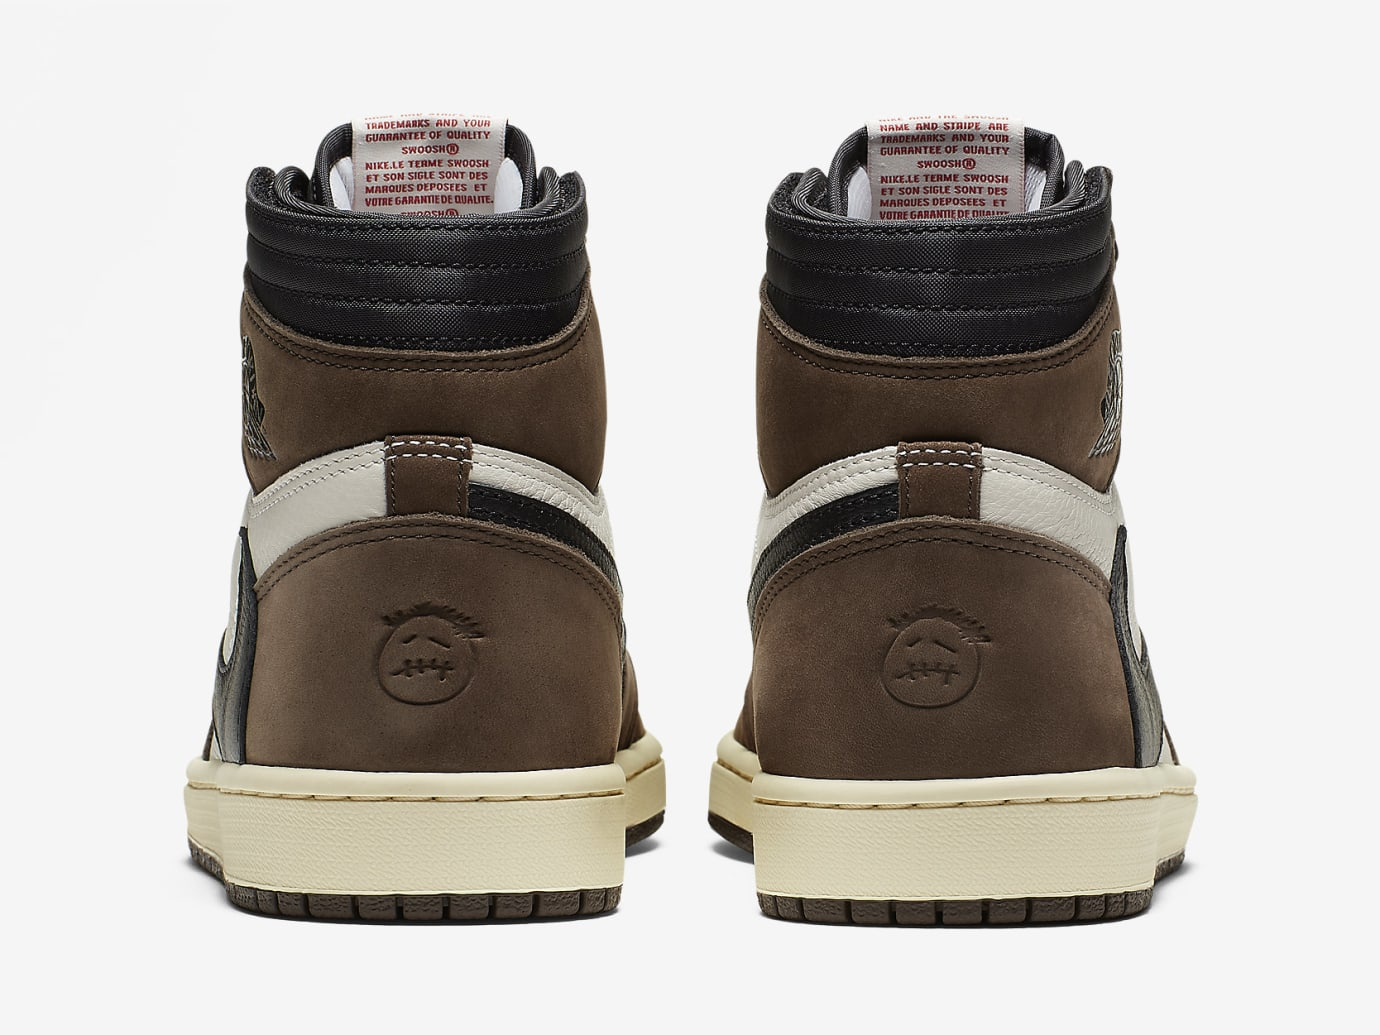 best website c36d5 4007a Image via Nike Travis Scott x Air Jordan 1 Brown Release Date CD4487-100  Heel